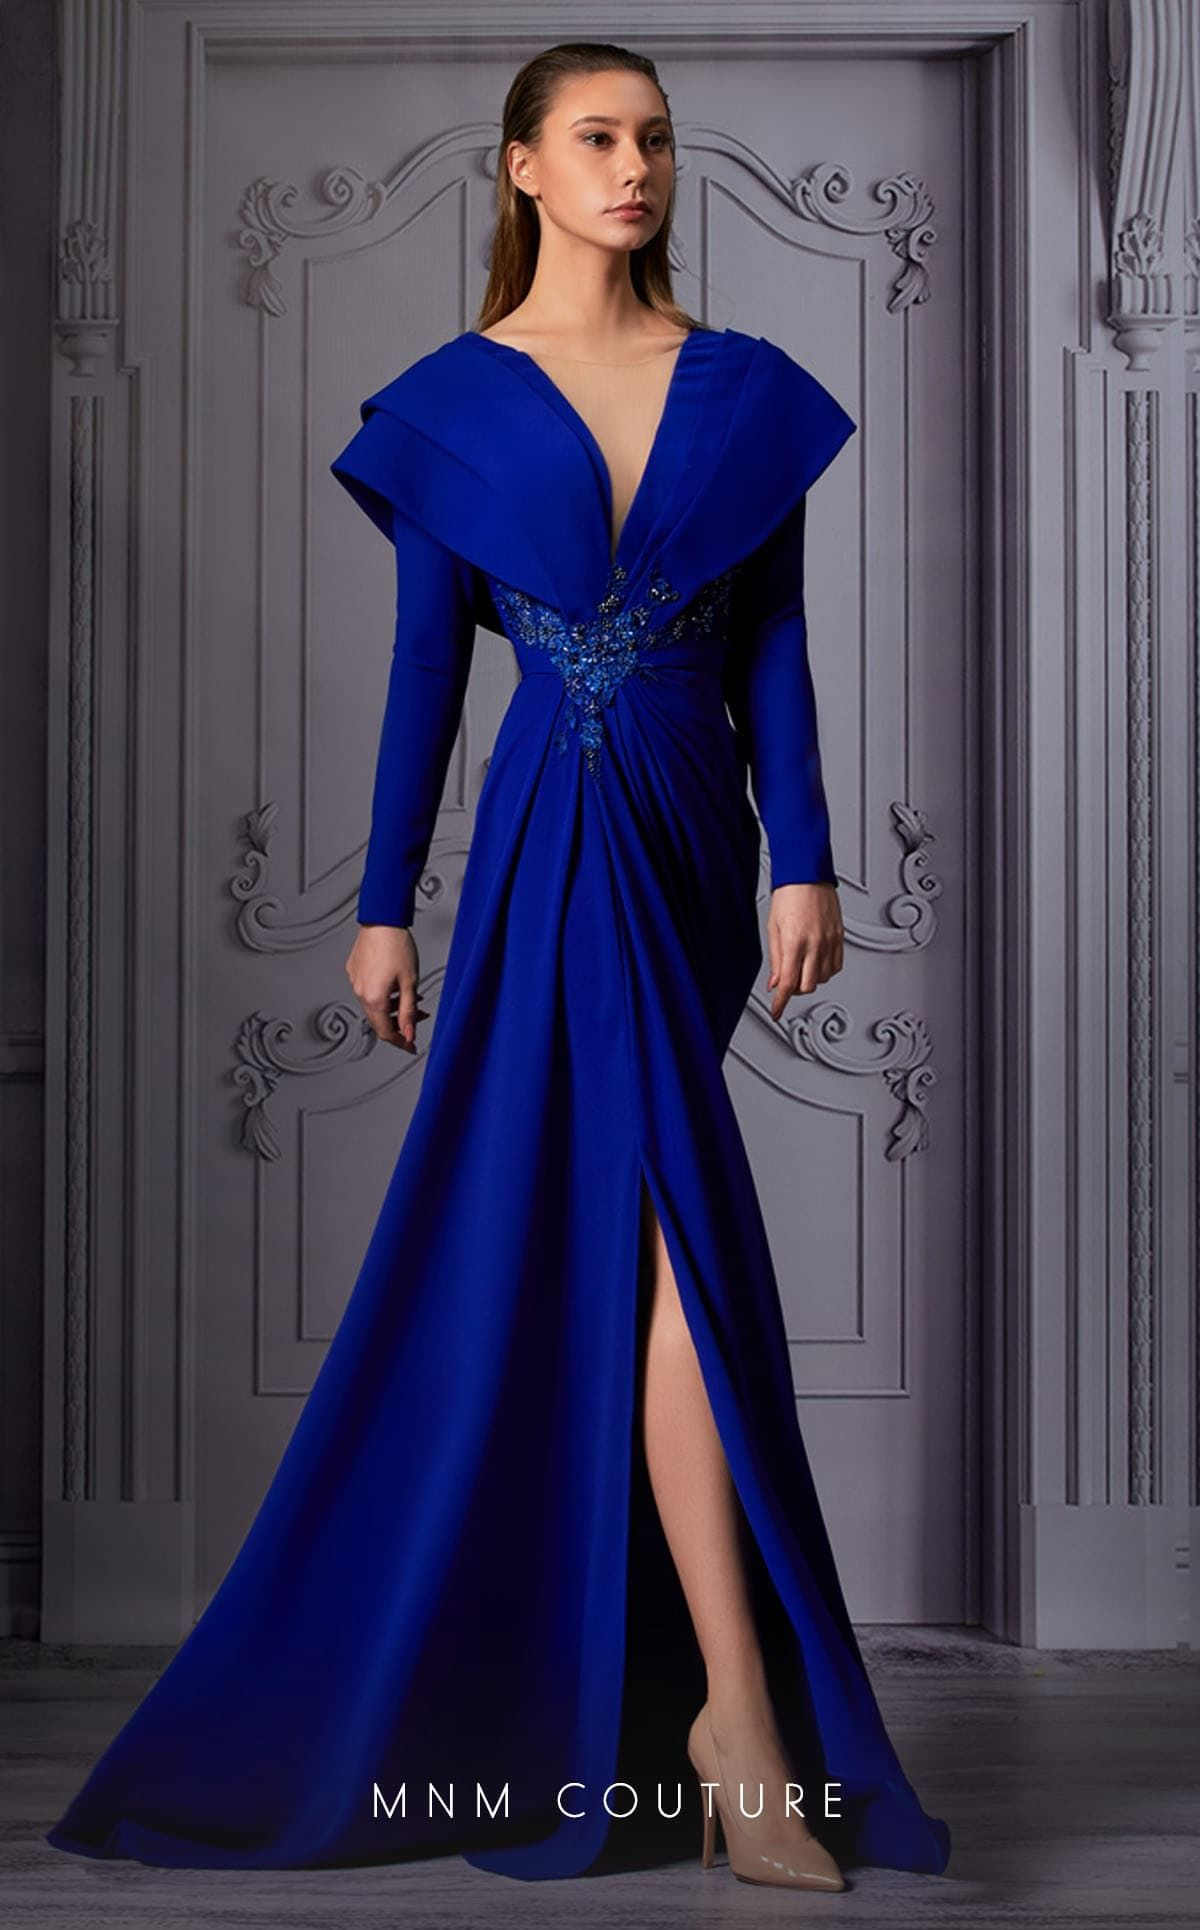 K3852 – MNMCouture - Couture gowns